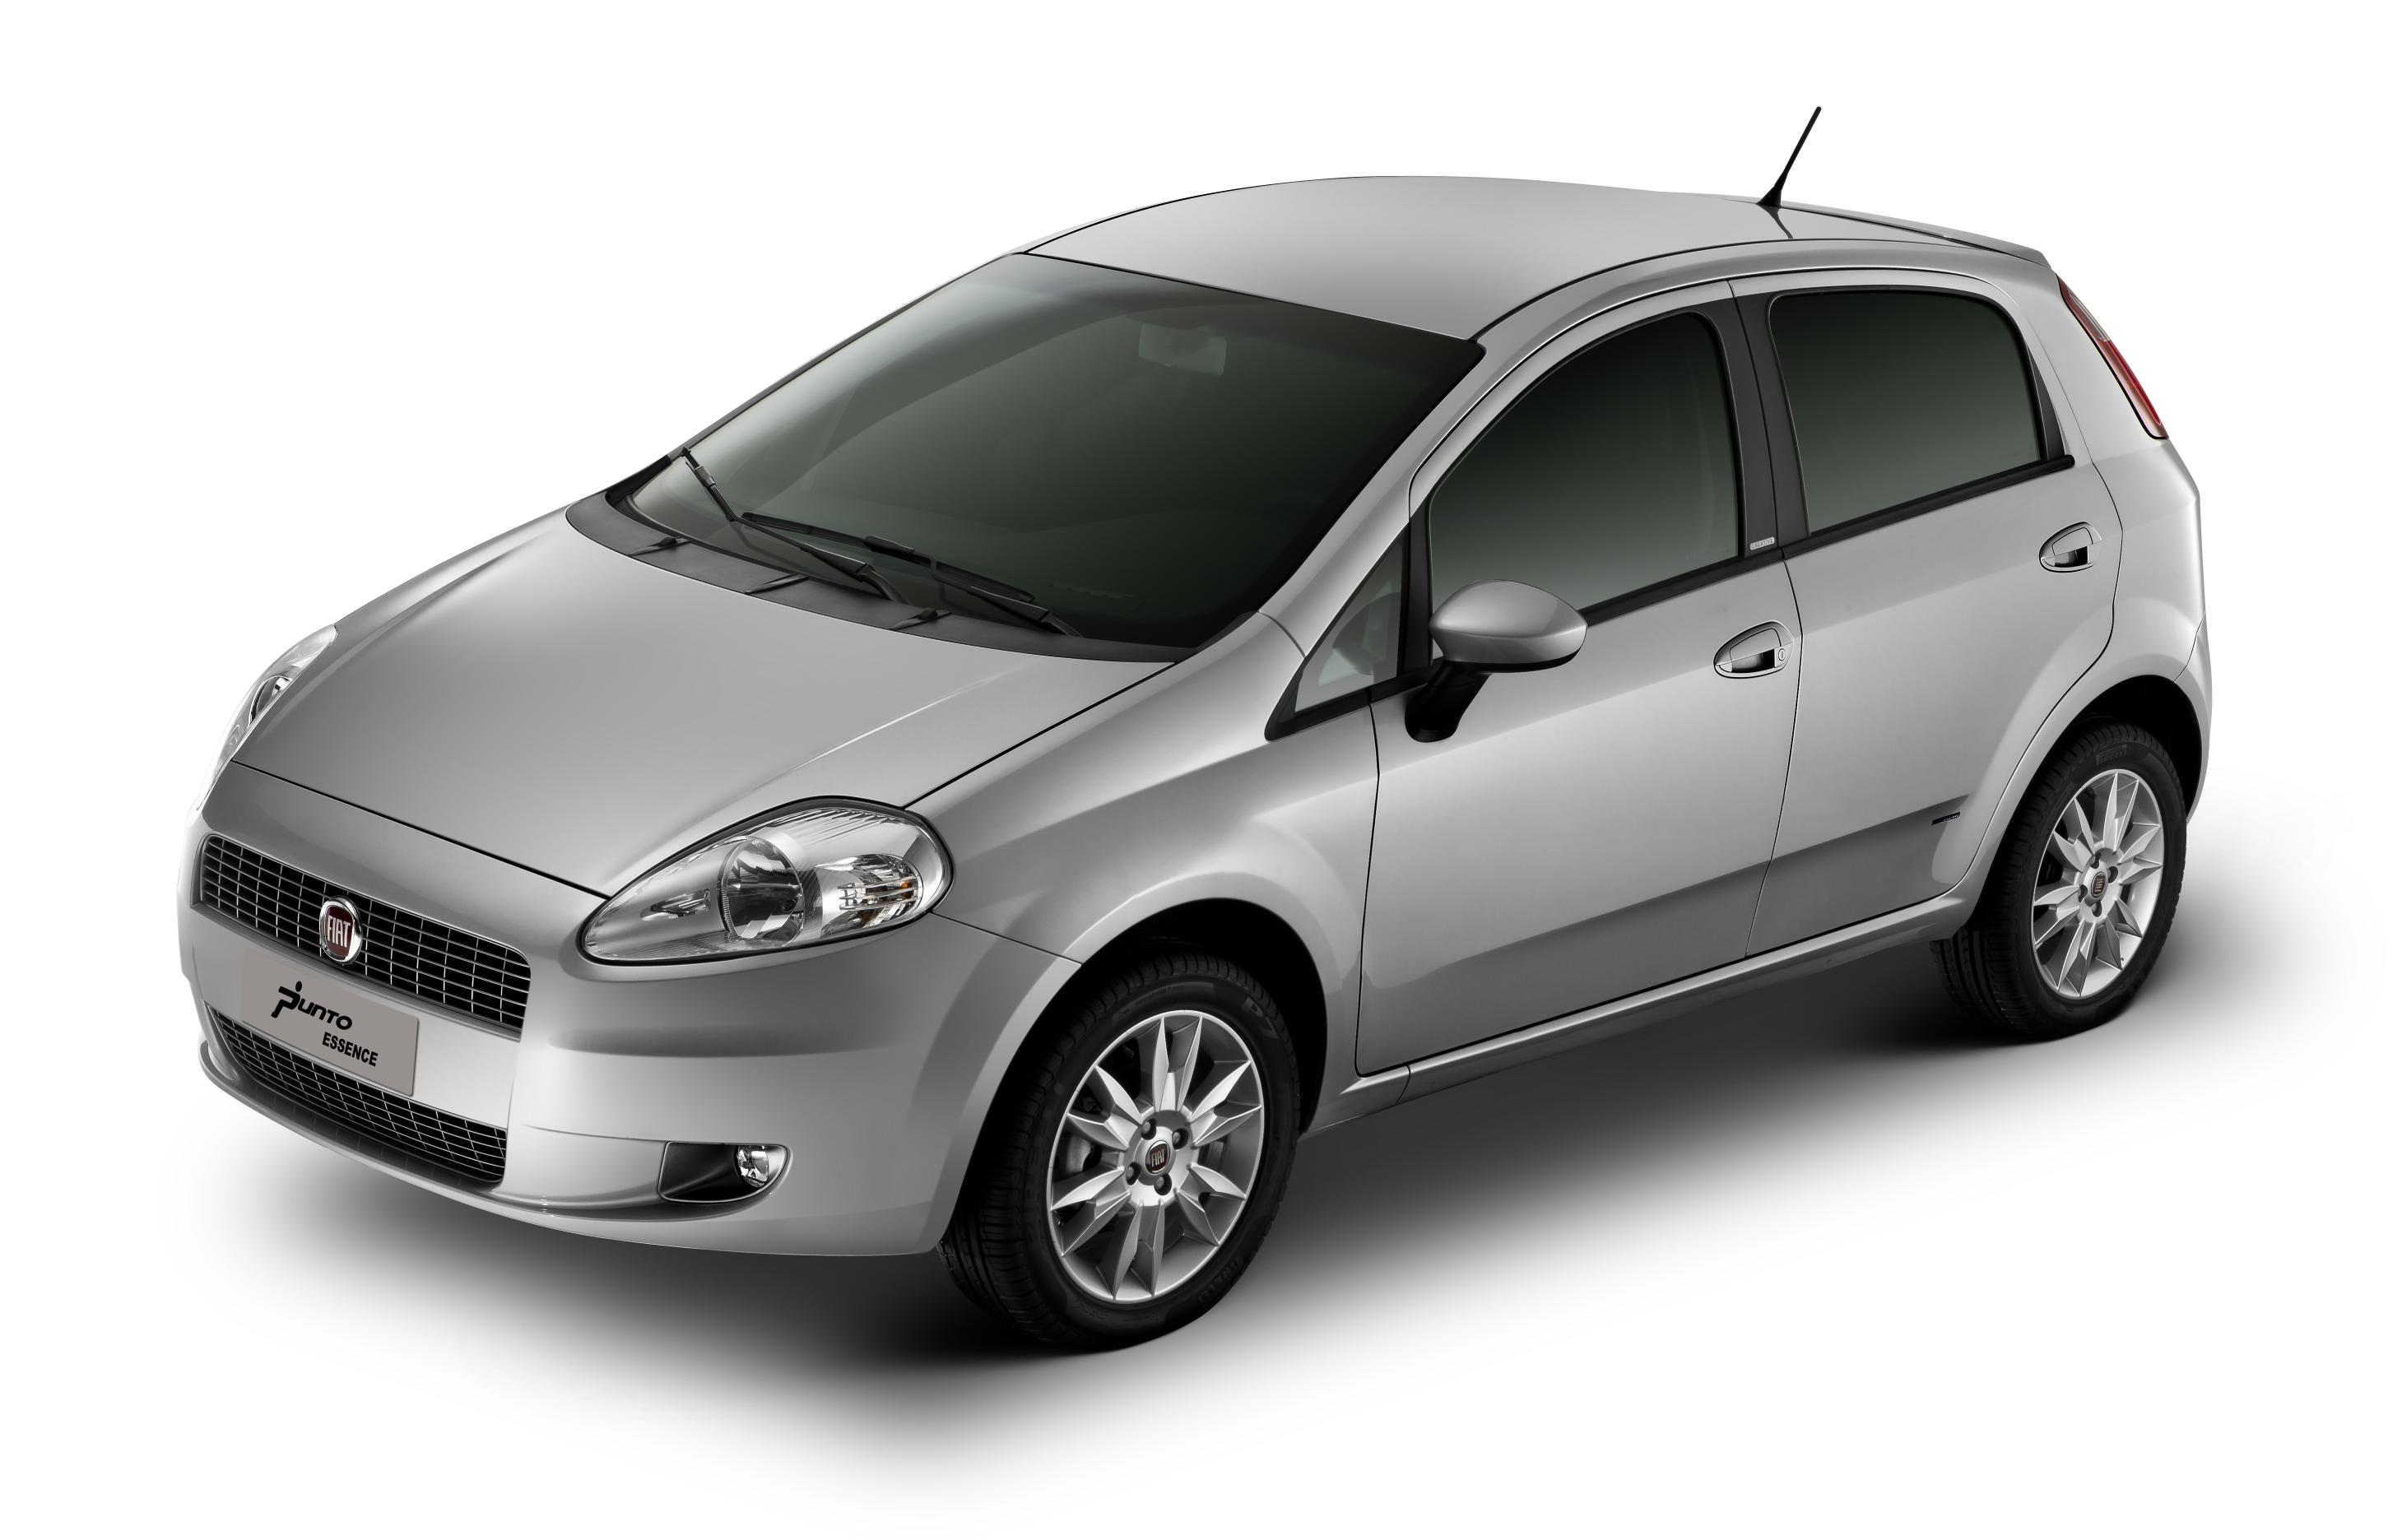 Fiat Punto 2011 Essence – 01 – ALL THE CARS